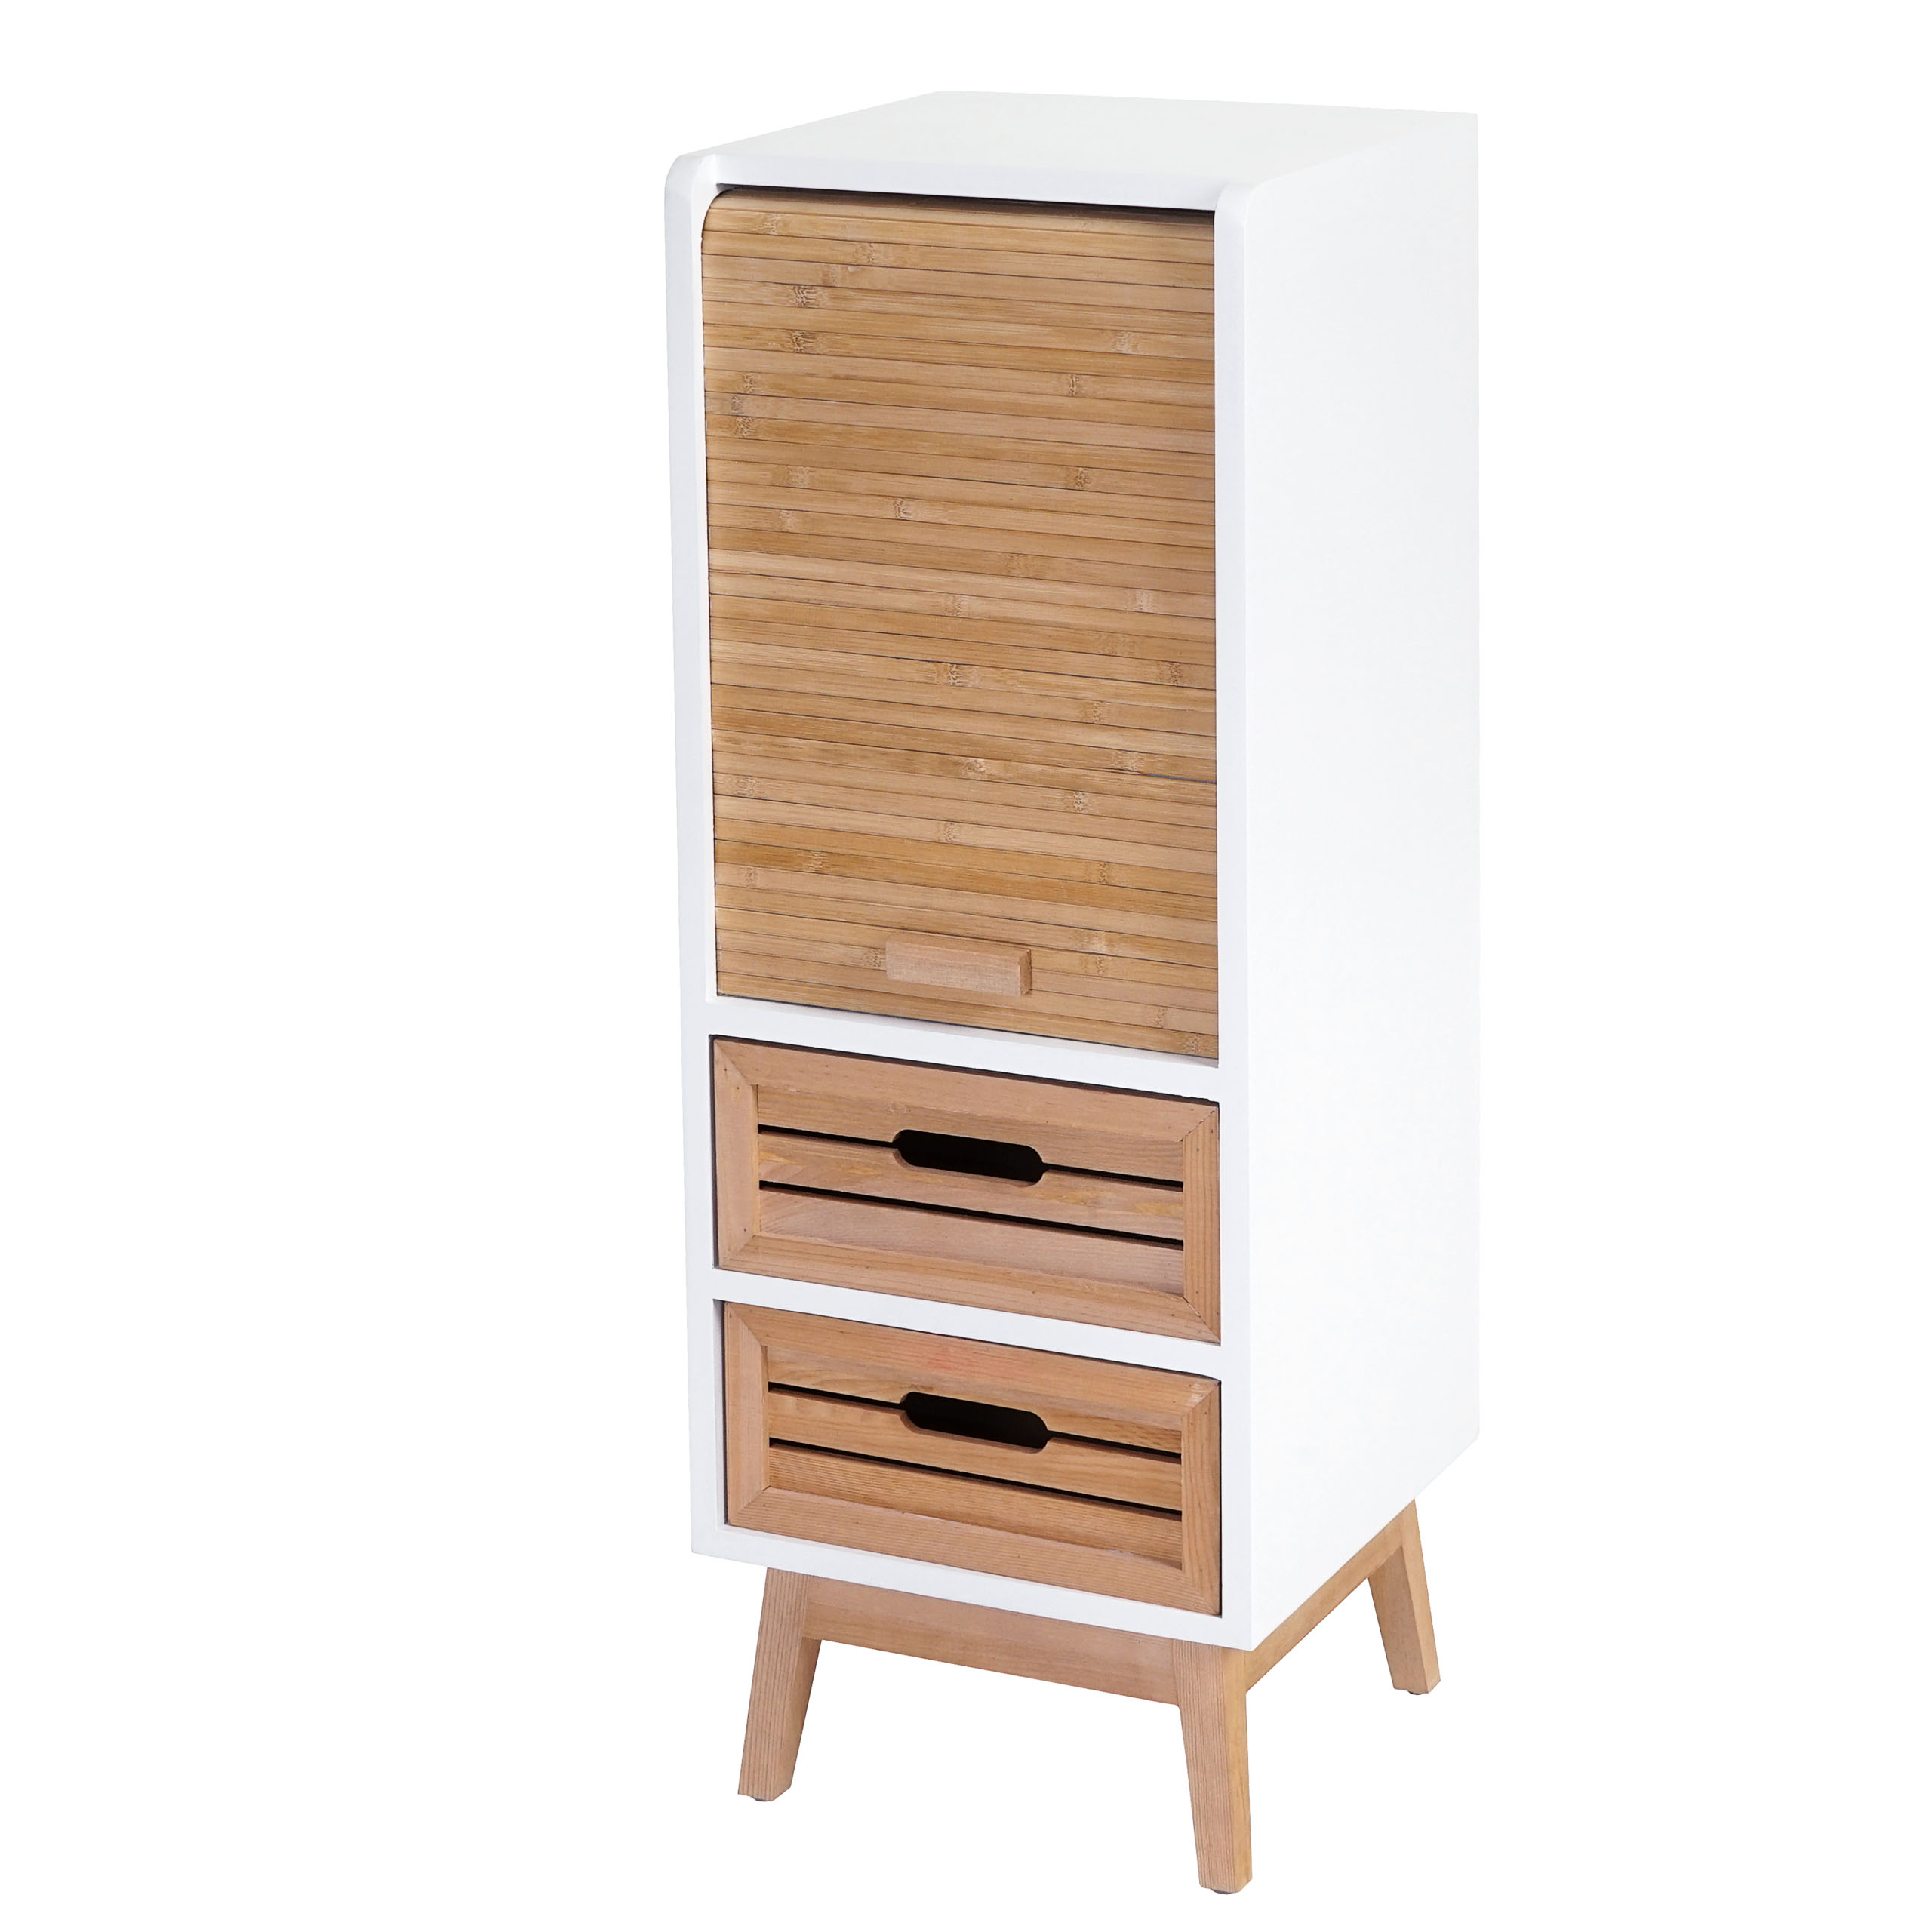 kommode larvik rollladen schubladenschrank retro design ebay. Black Bedroom Furniture Sets. Home Design Ideas